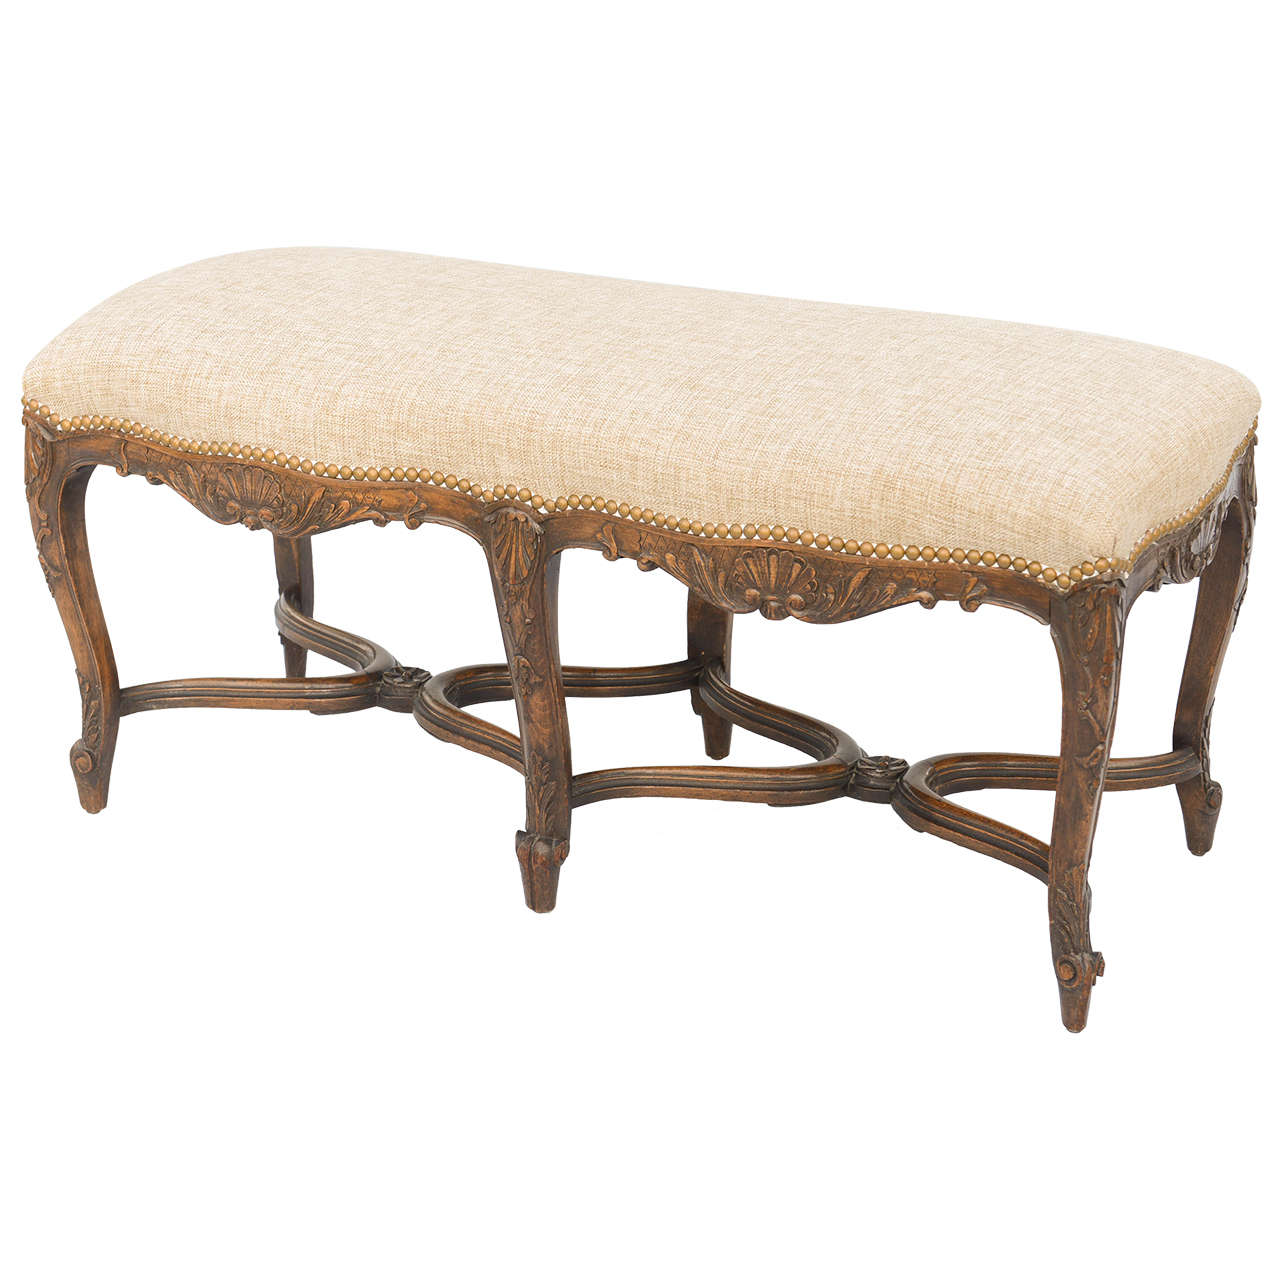 French Regence Style Walnut Bench On Antique Row West